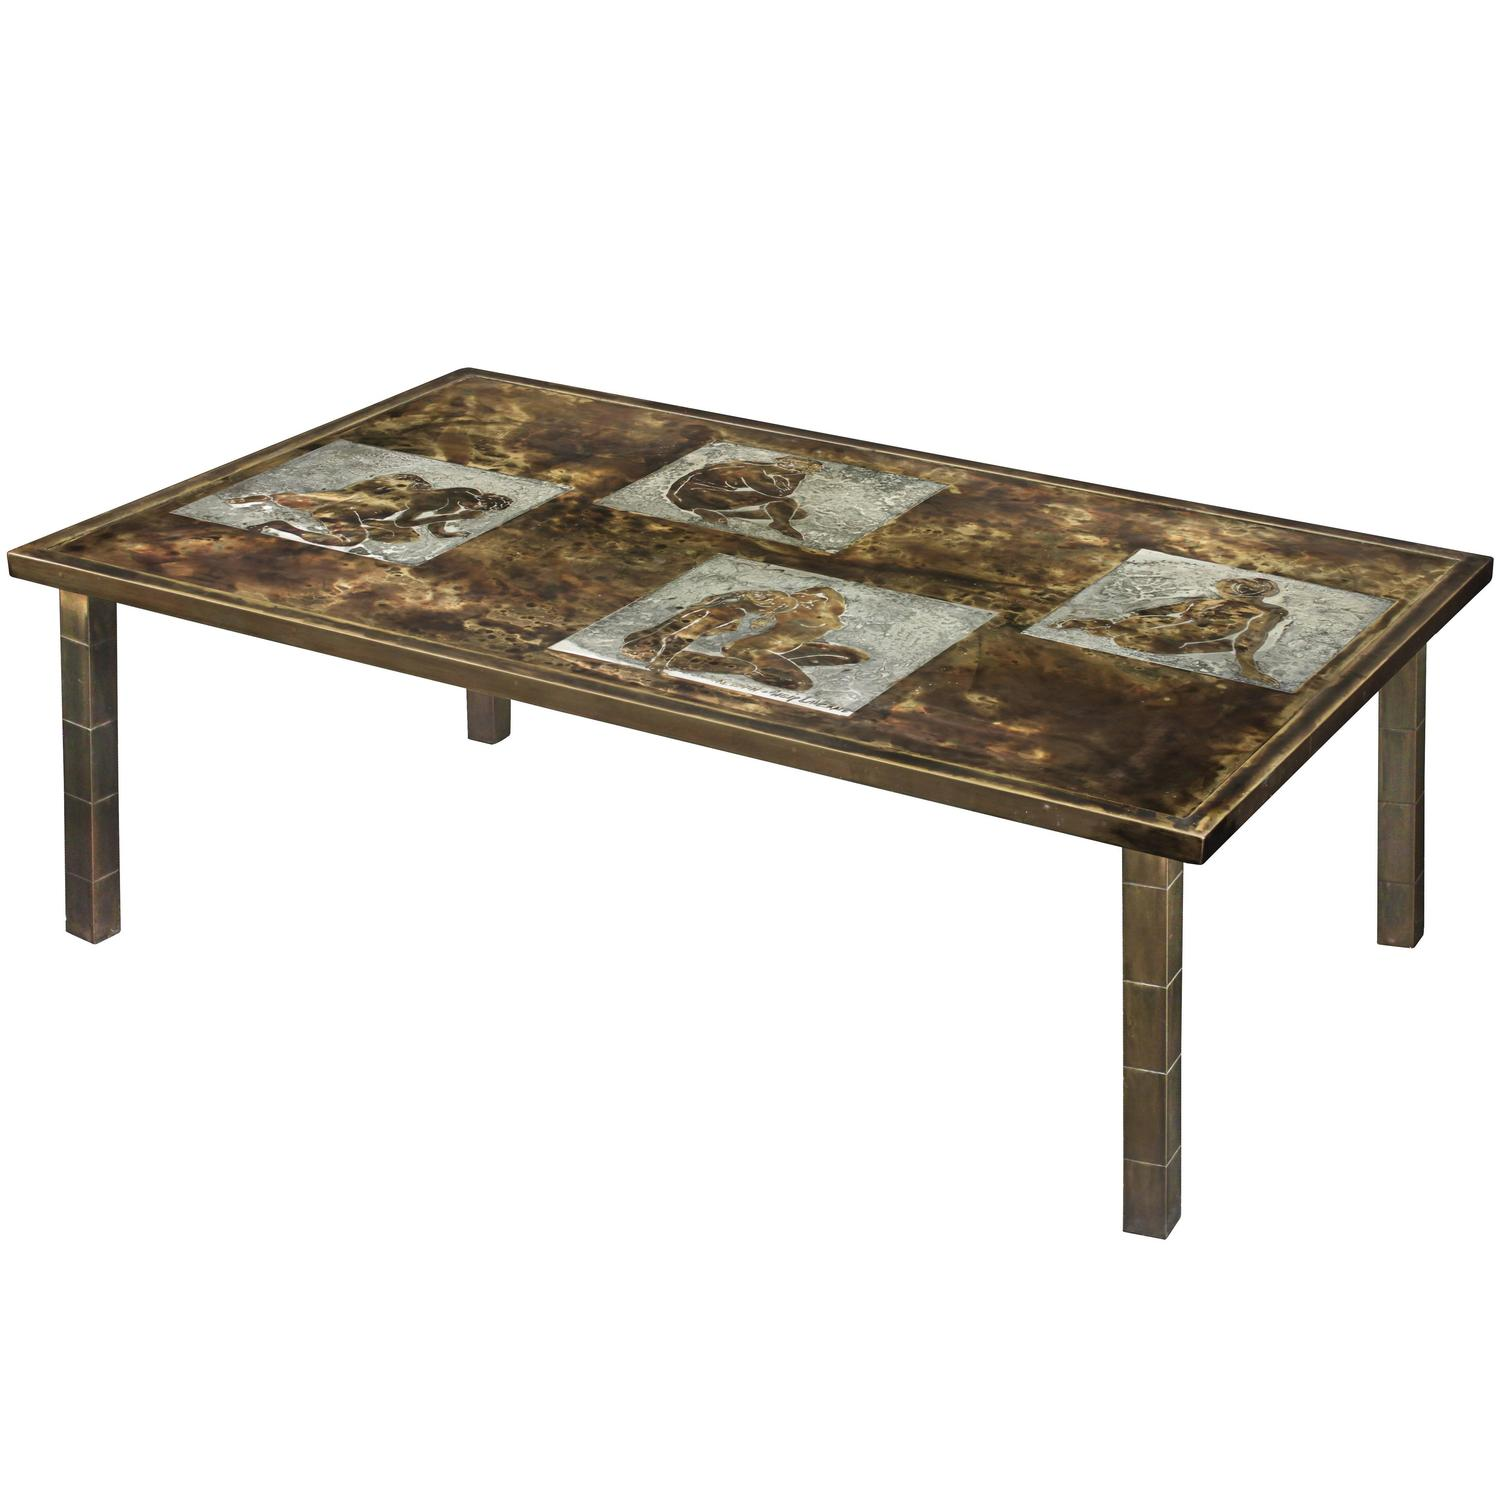 Rare Coffee Table With Female Nudes By Philip And Kelvin LaVerne At 1stdibs